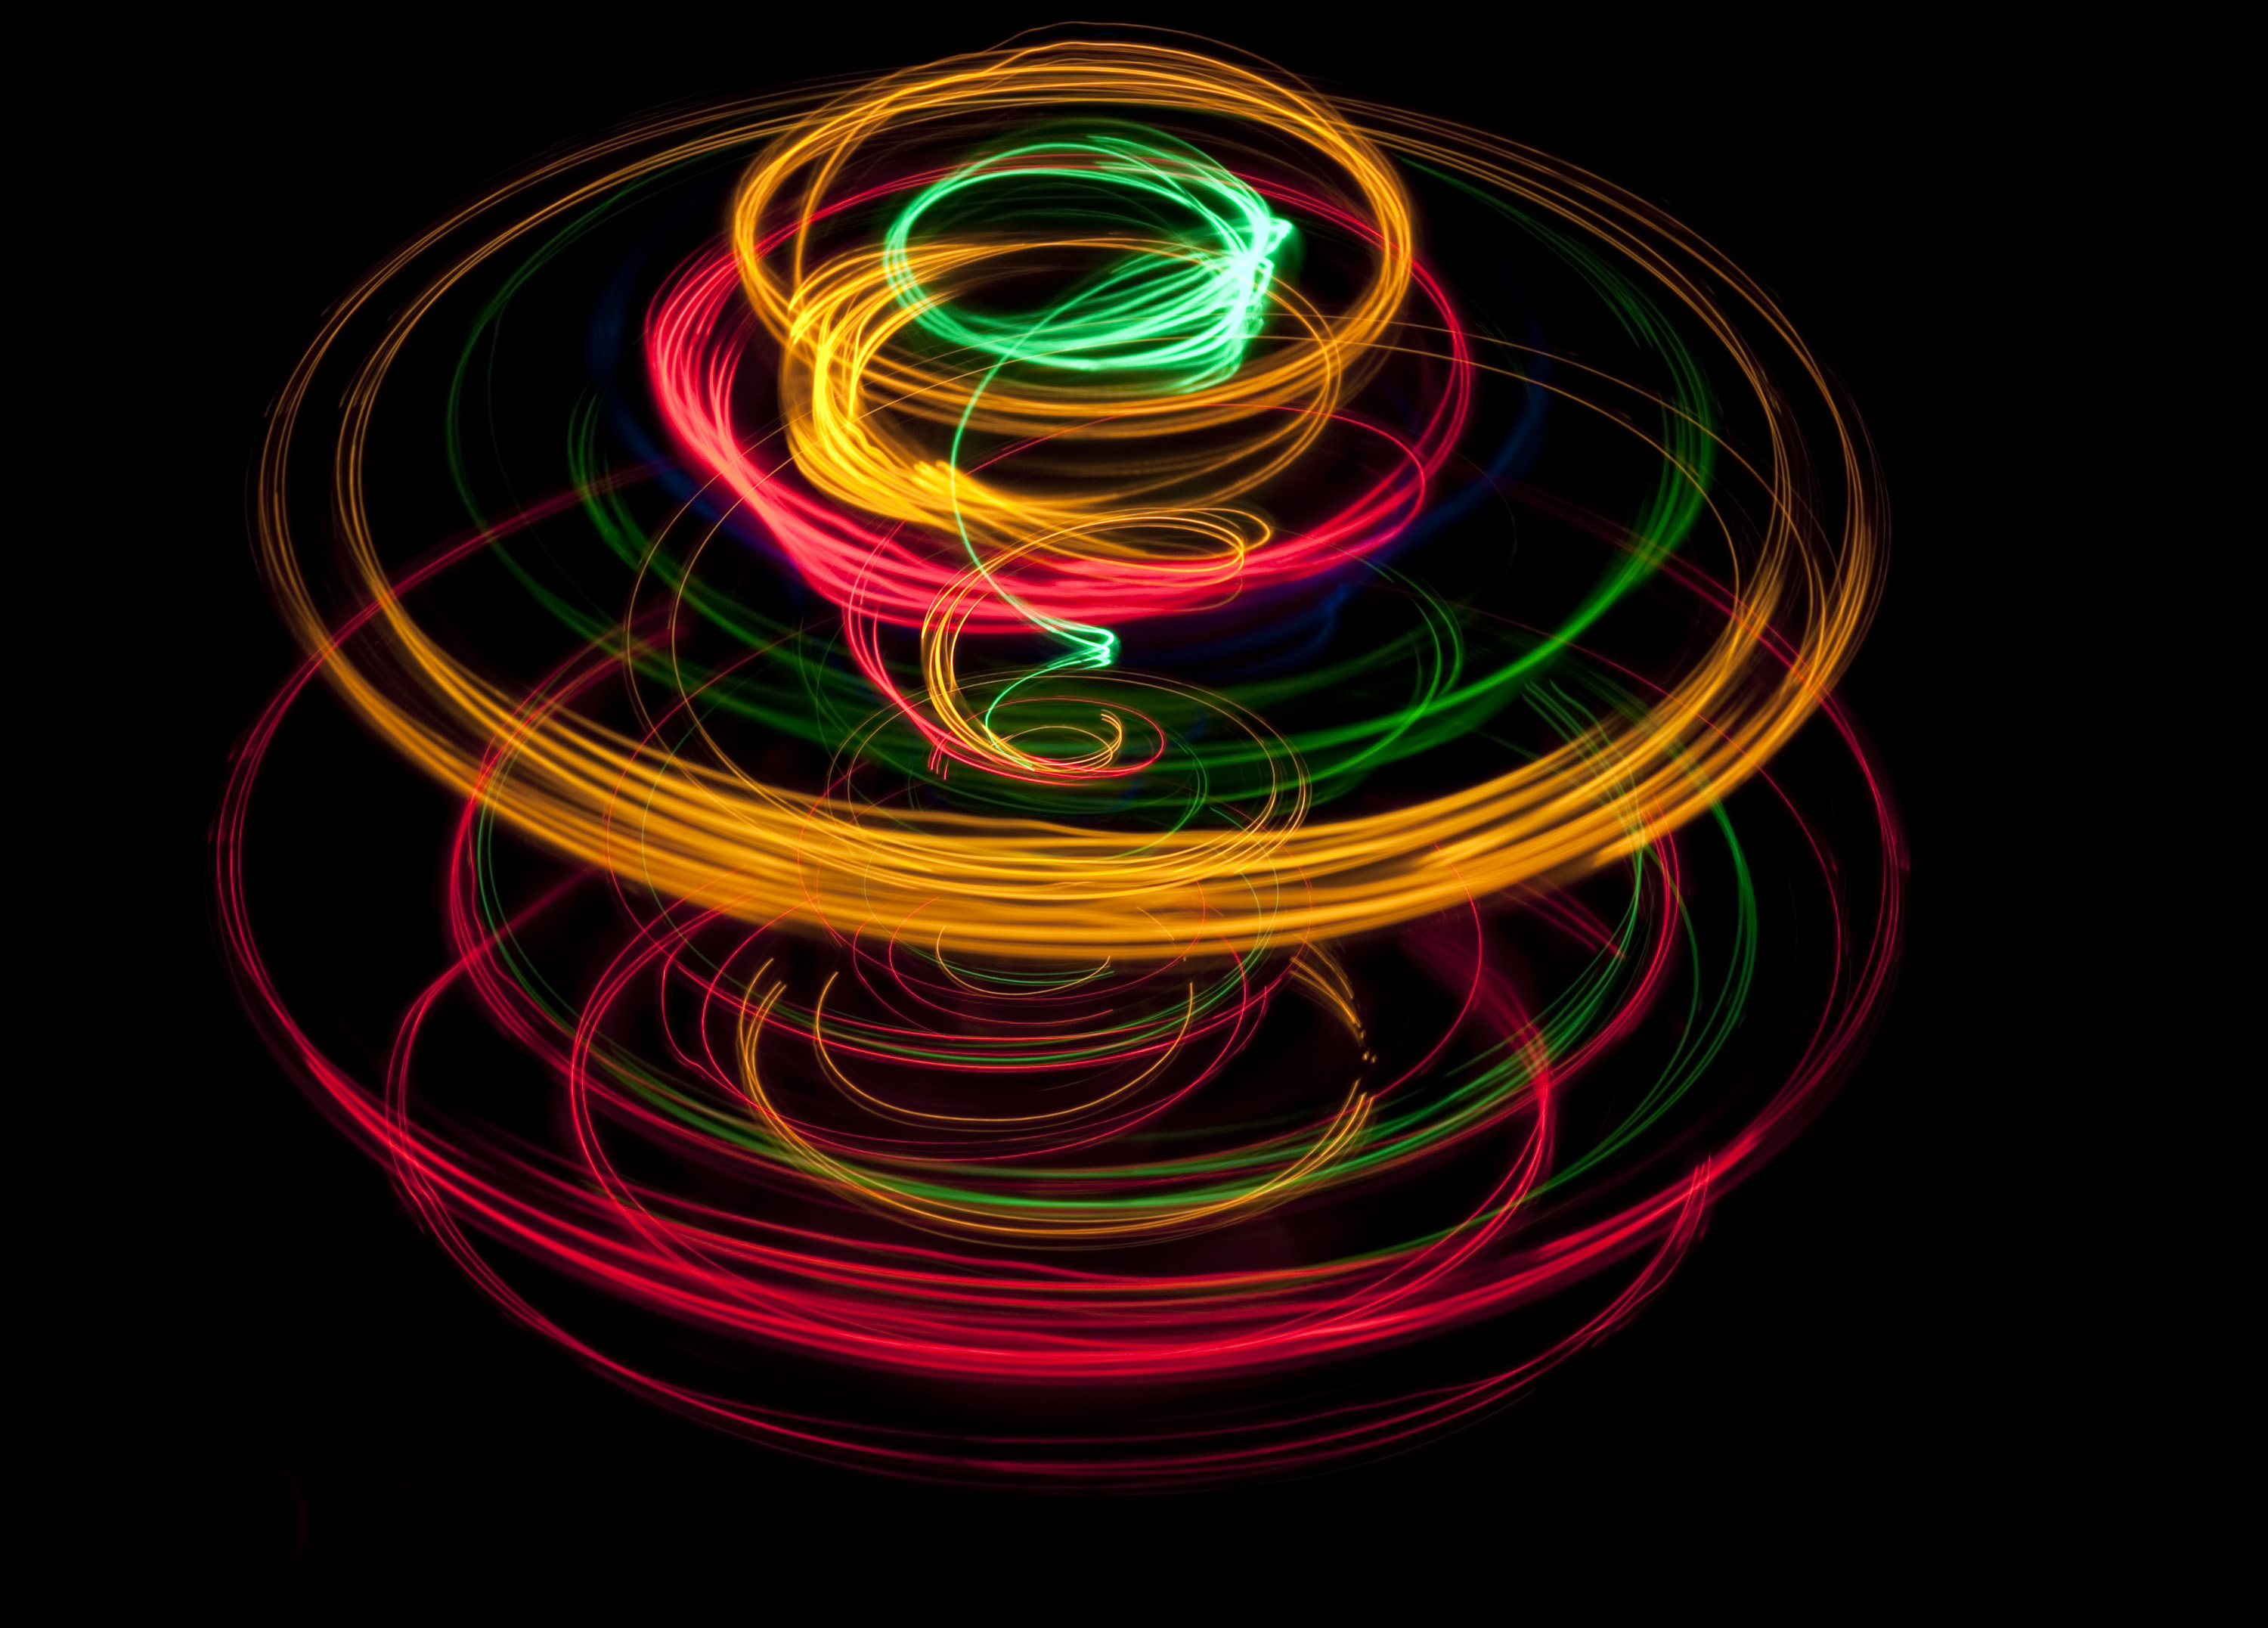 glowing lines of light plotting a spiraling circular pattern